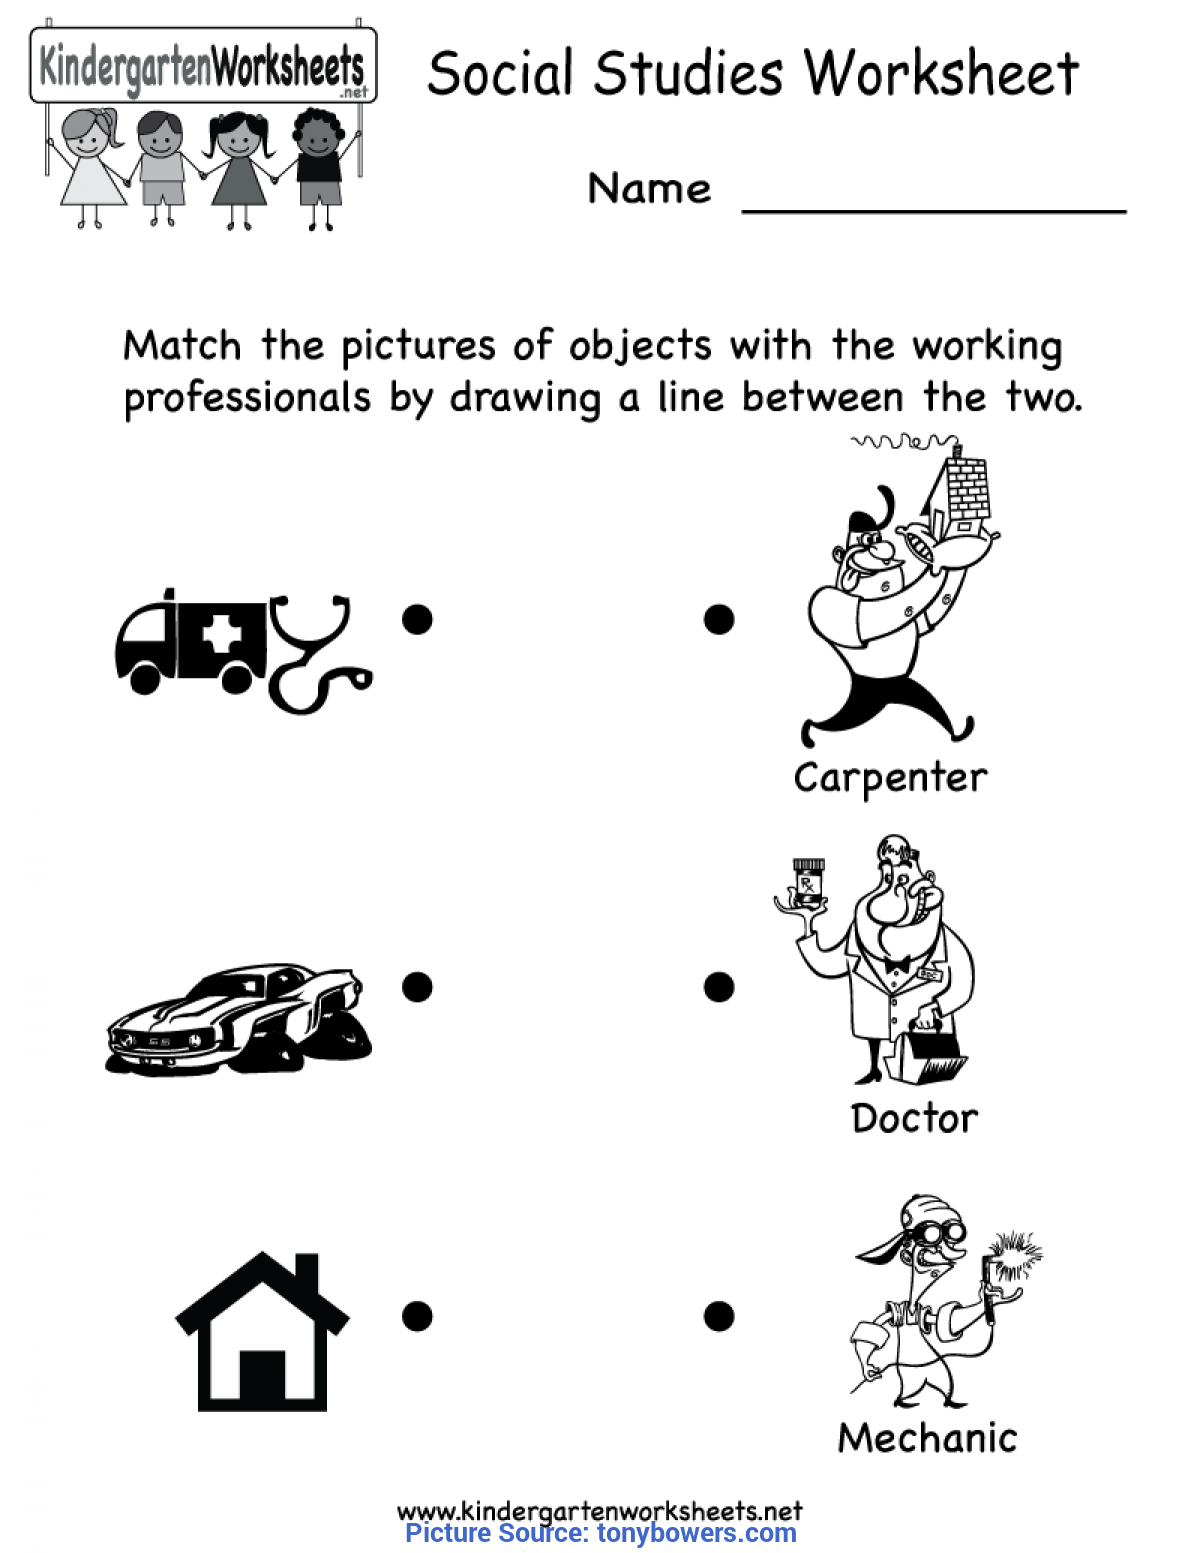 Regular Kindergarten Social Studies Coloring Pages Printable. Awesome Activities To Help Fre